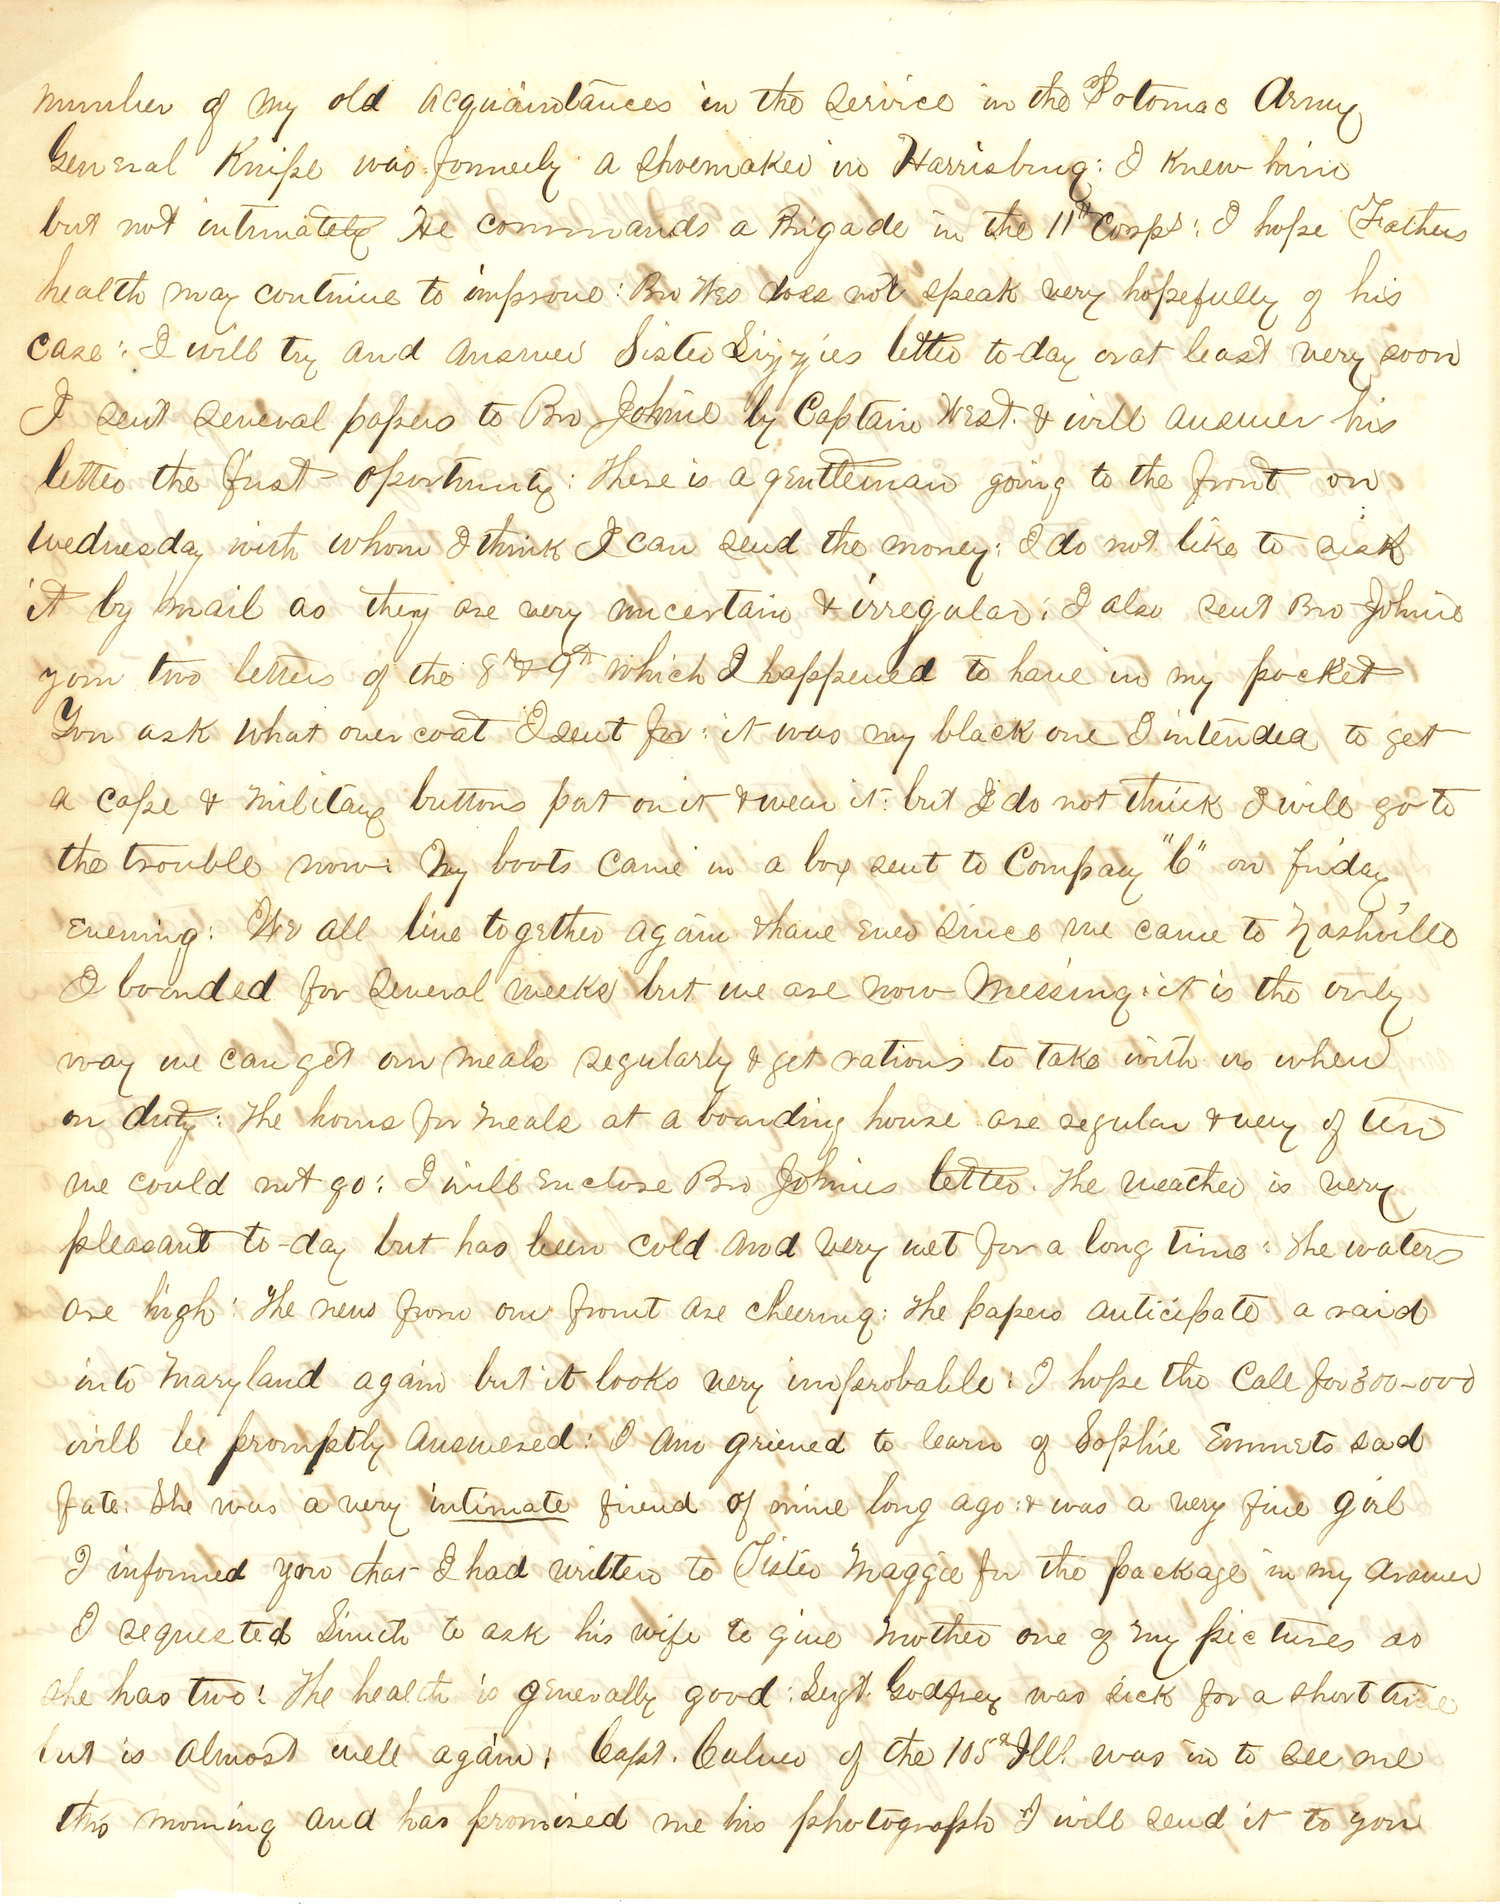 Joseph Culver Letter, October 19, 1863, Page 2